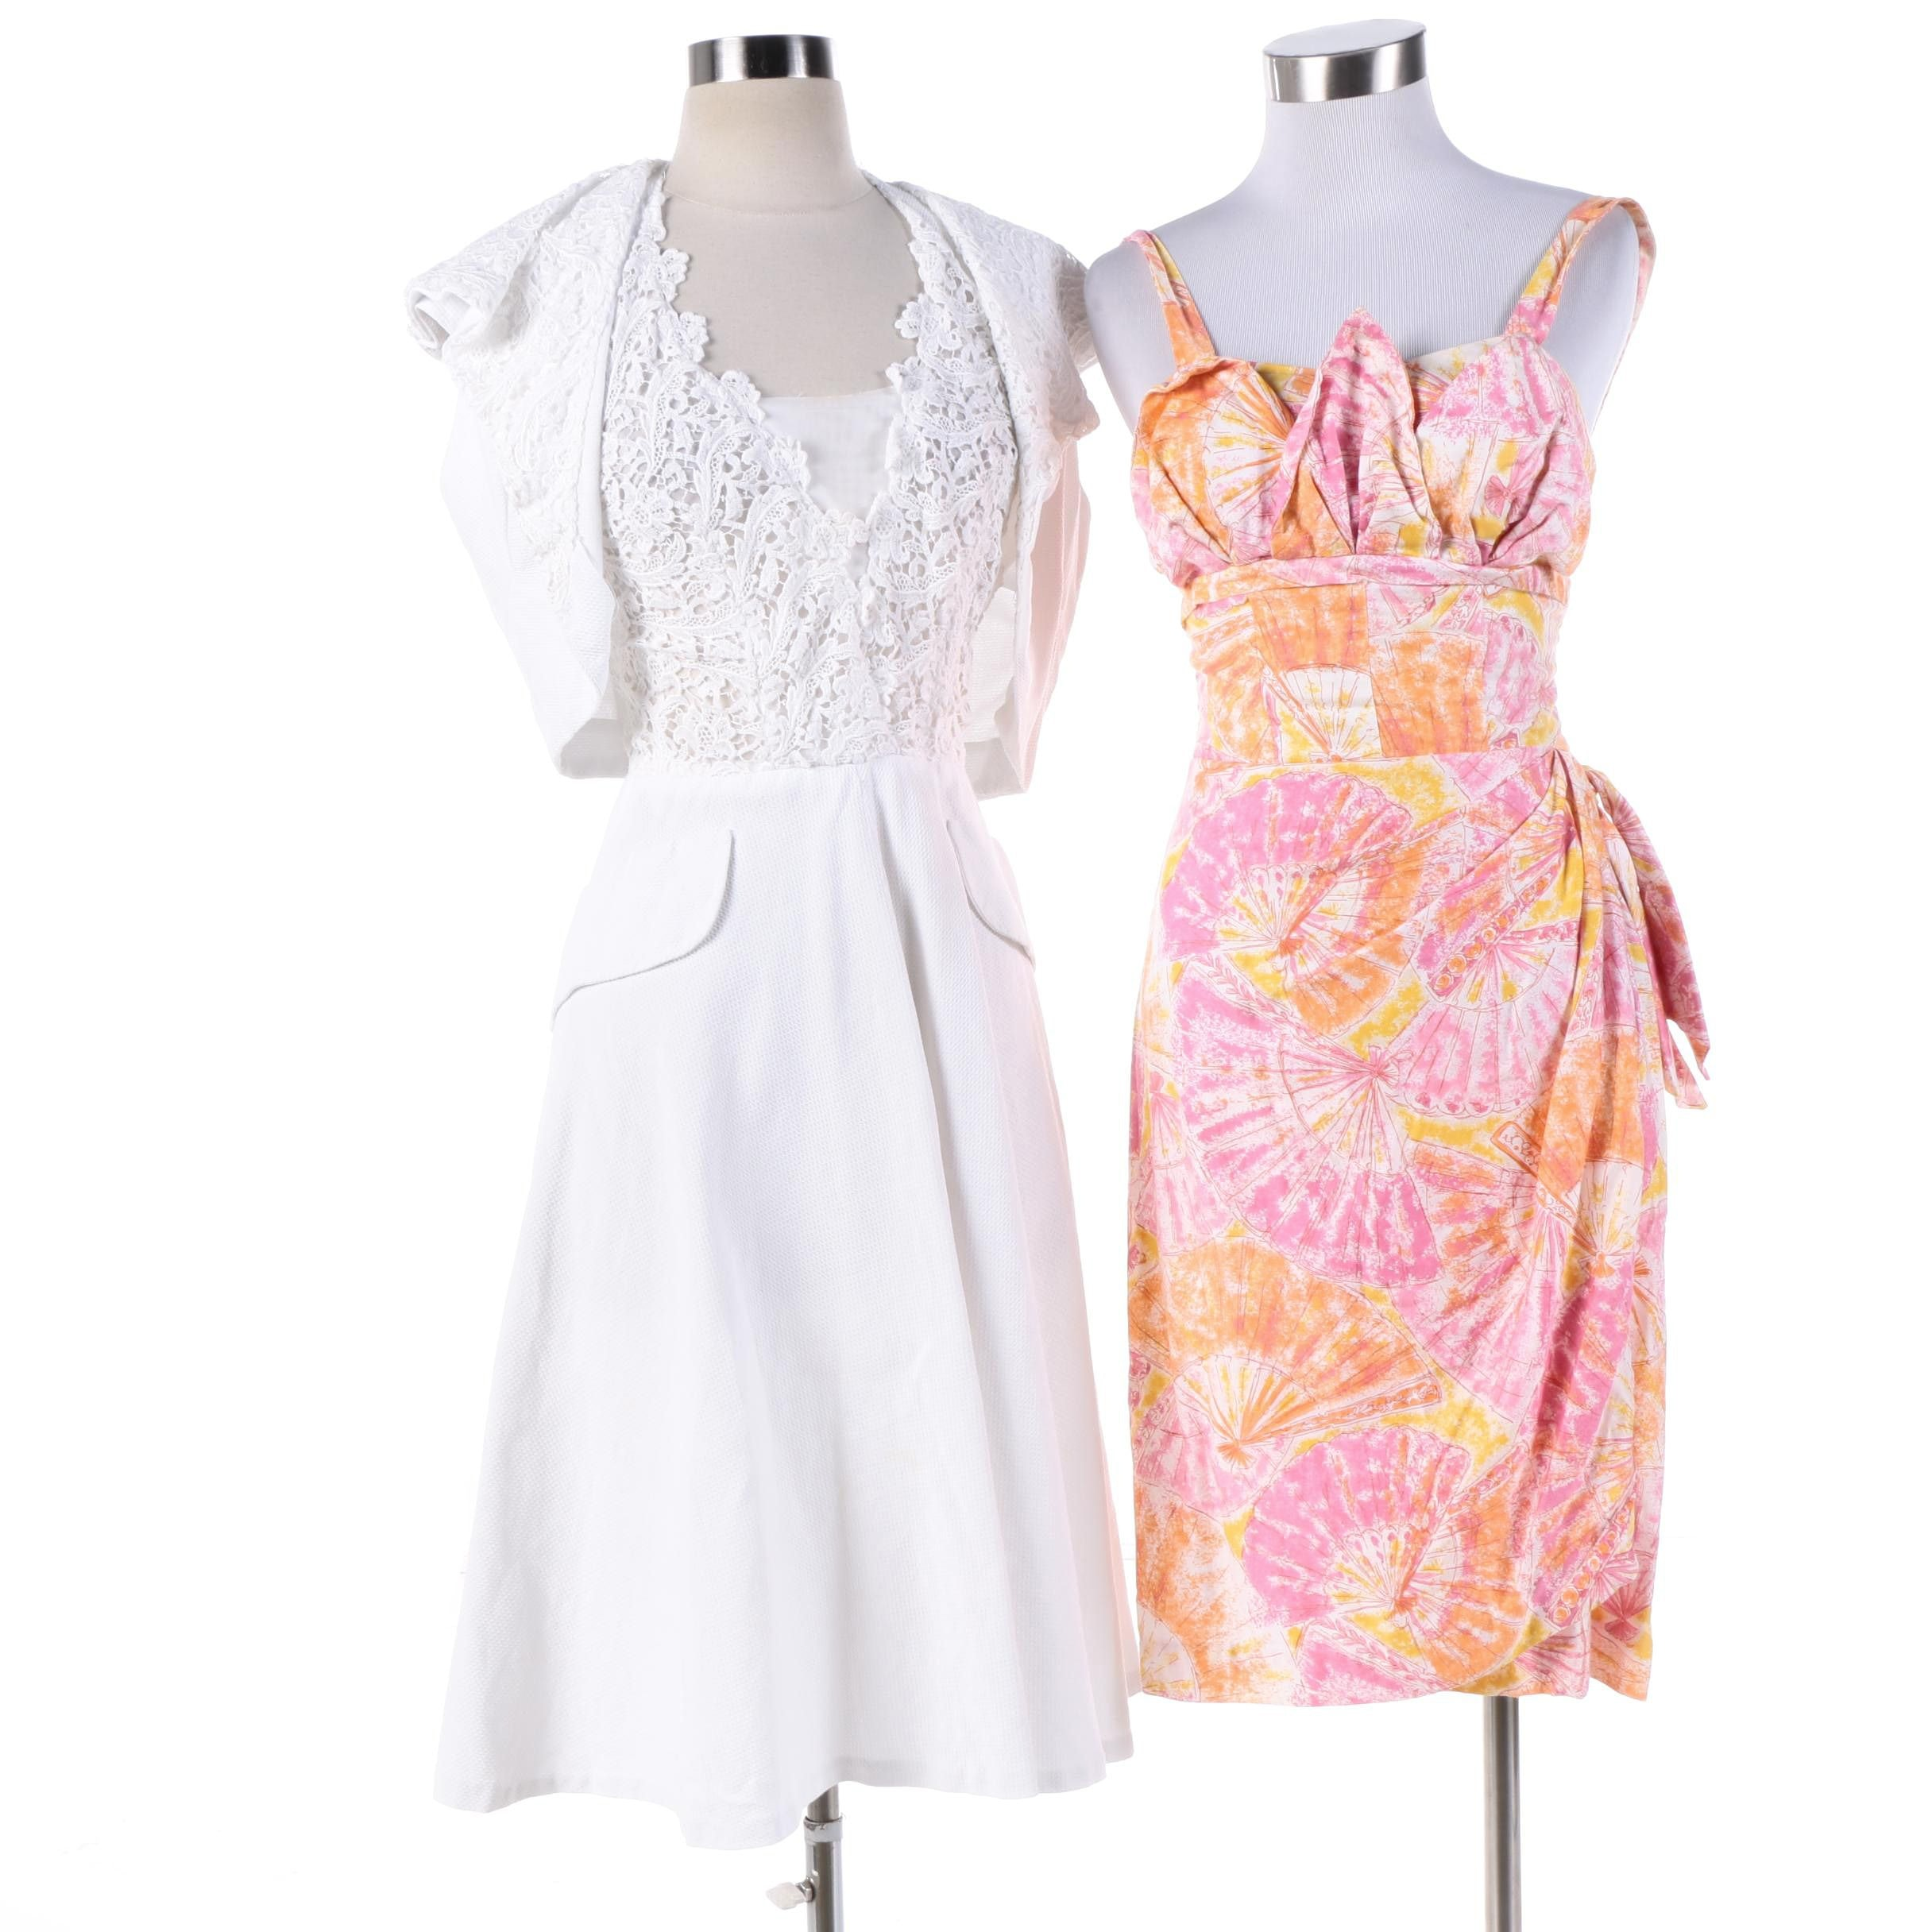 1950s Vintage Cotton and Lace Casual Summer Dresses Including Bernardo